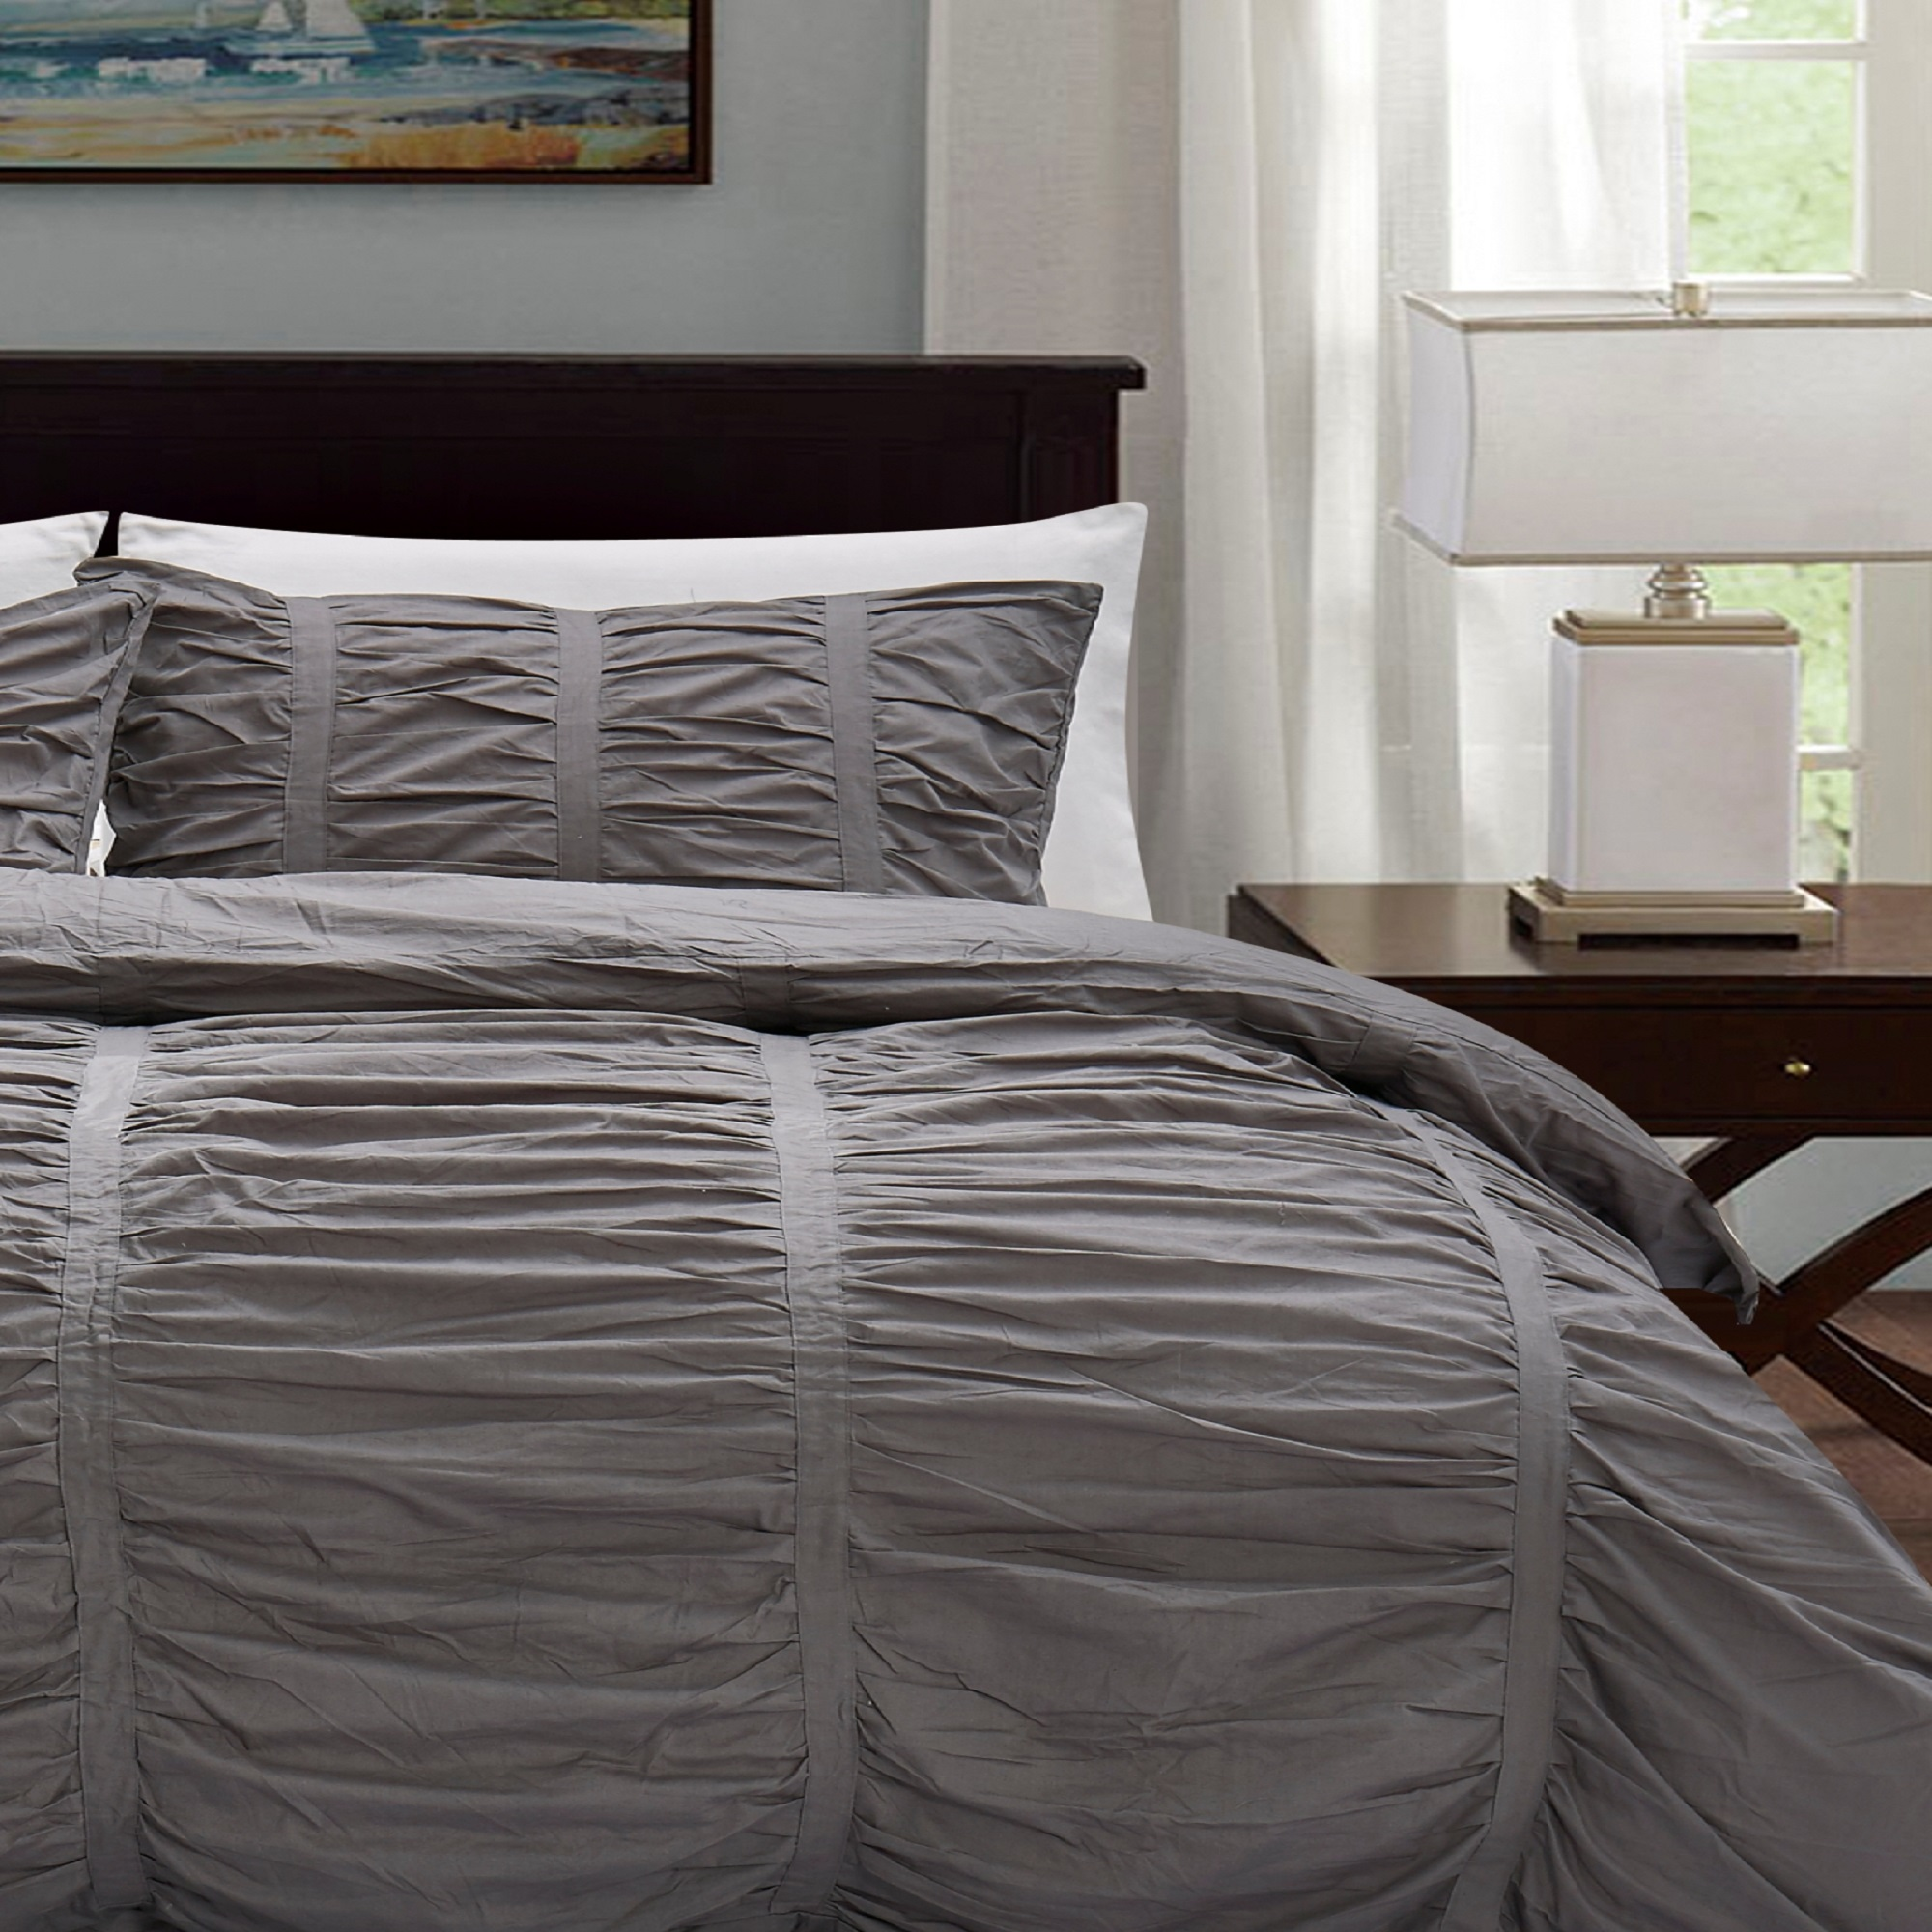 Queen Duvet Cover Set Ruffle n Ruched Vintage Pattern 100/% Cotton 3 Piece King